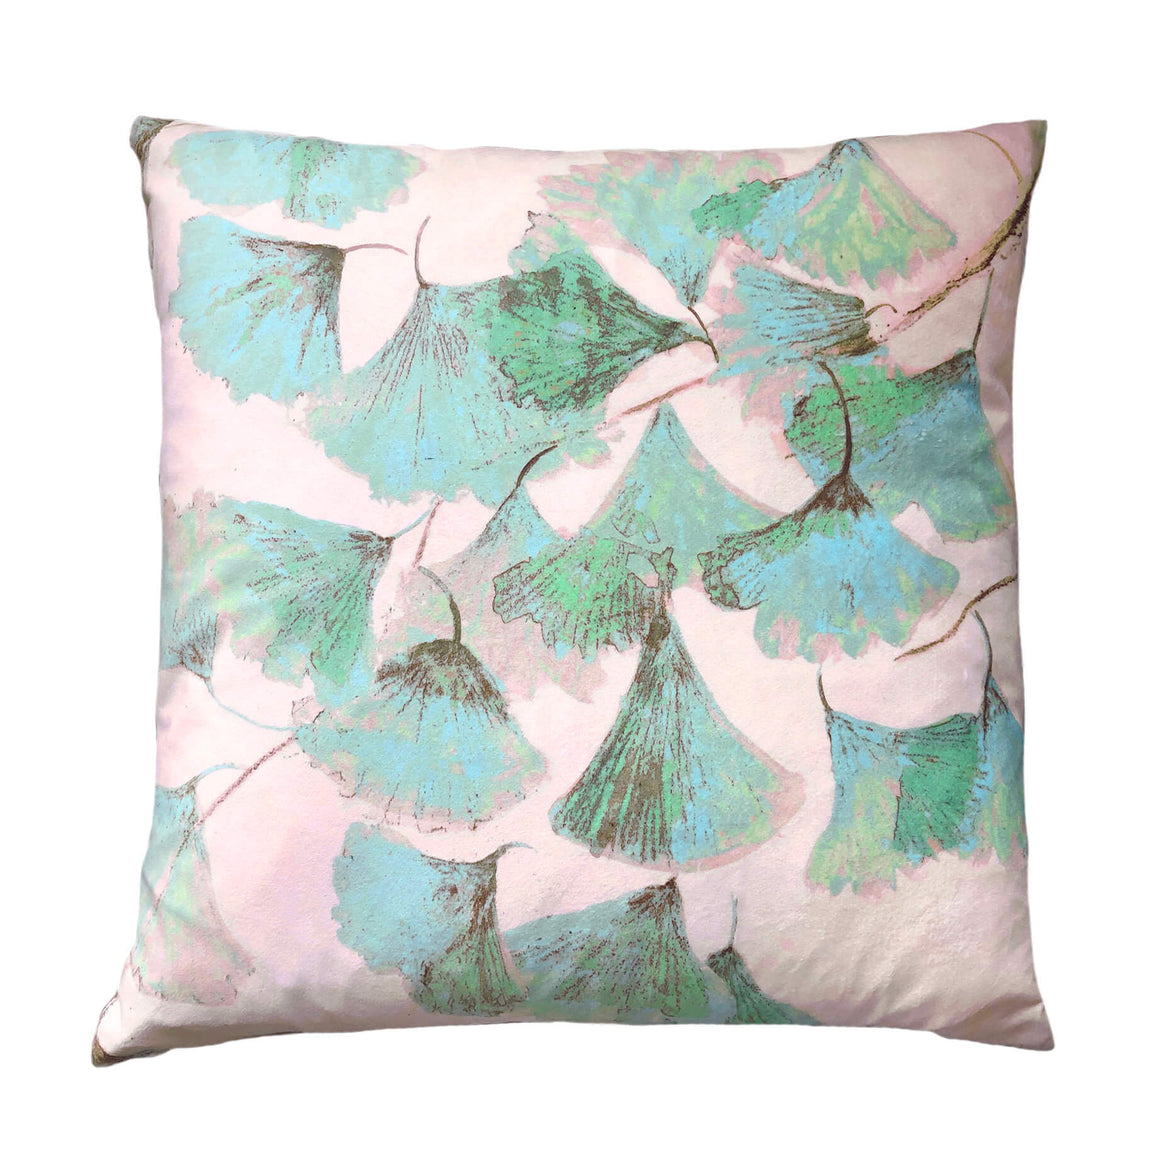 Green and pink velvet cushion - Ginkgo in Jade - by Anna Jacobs